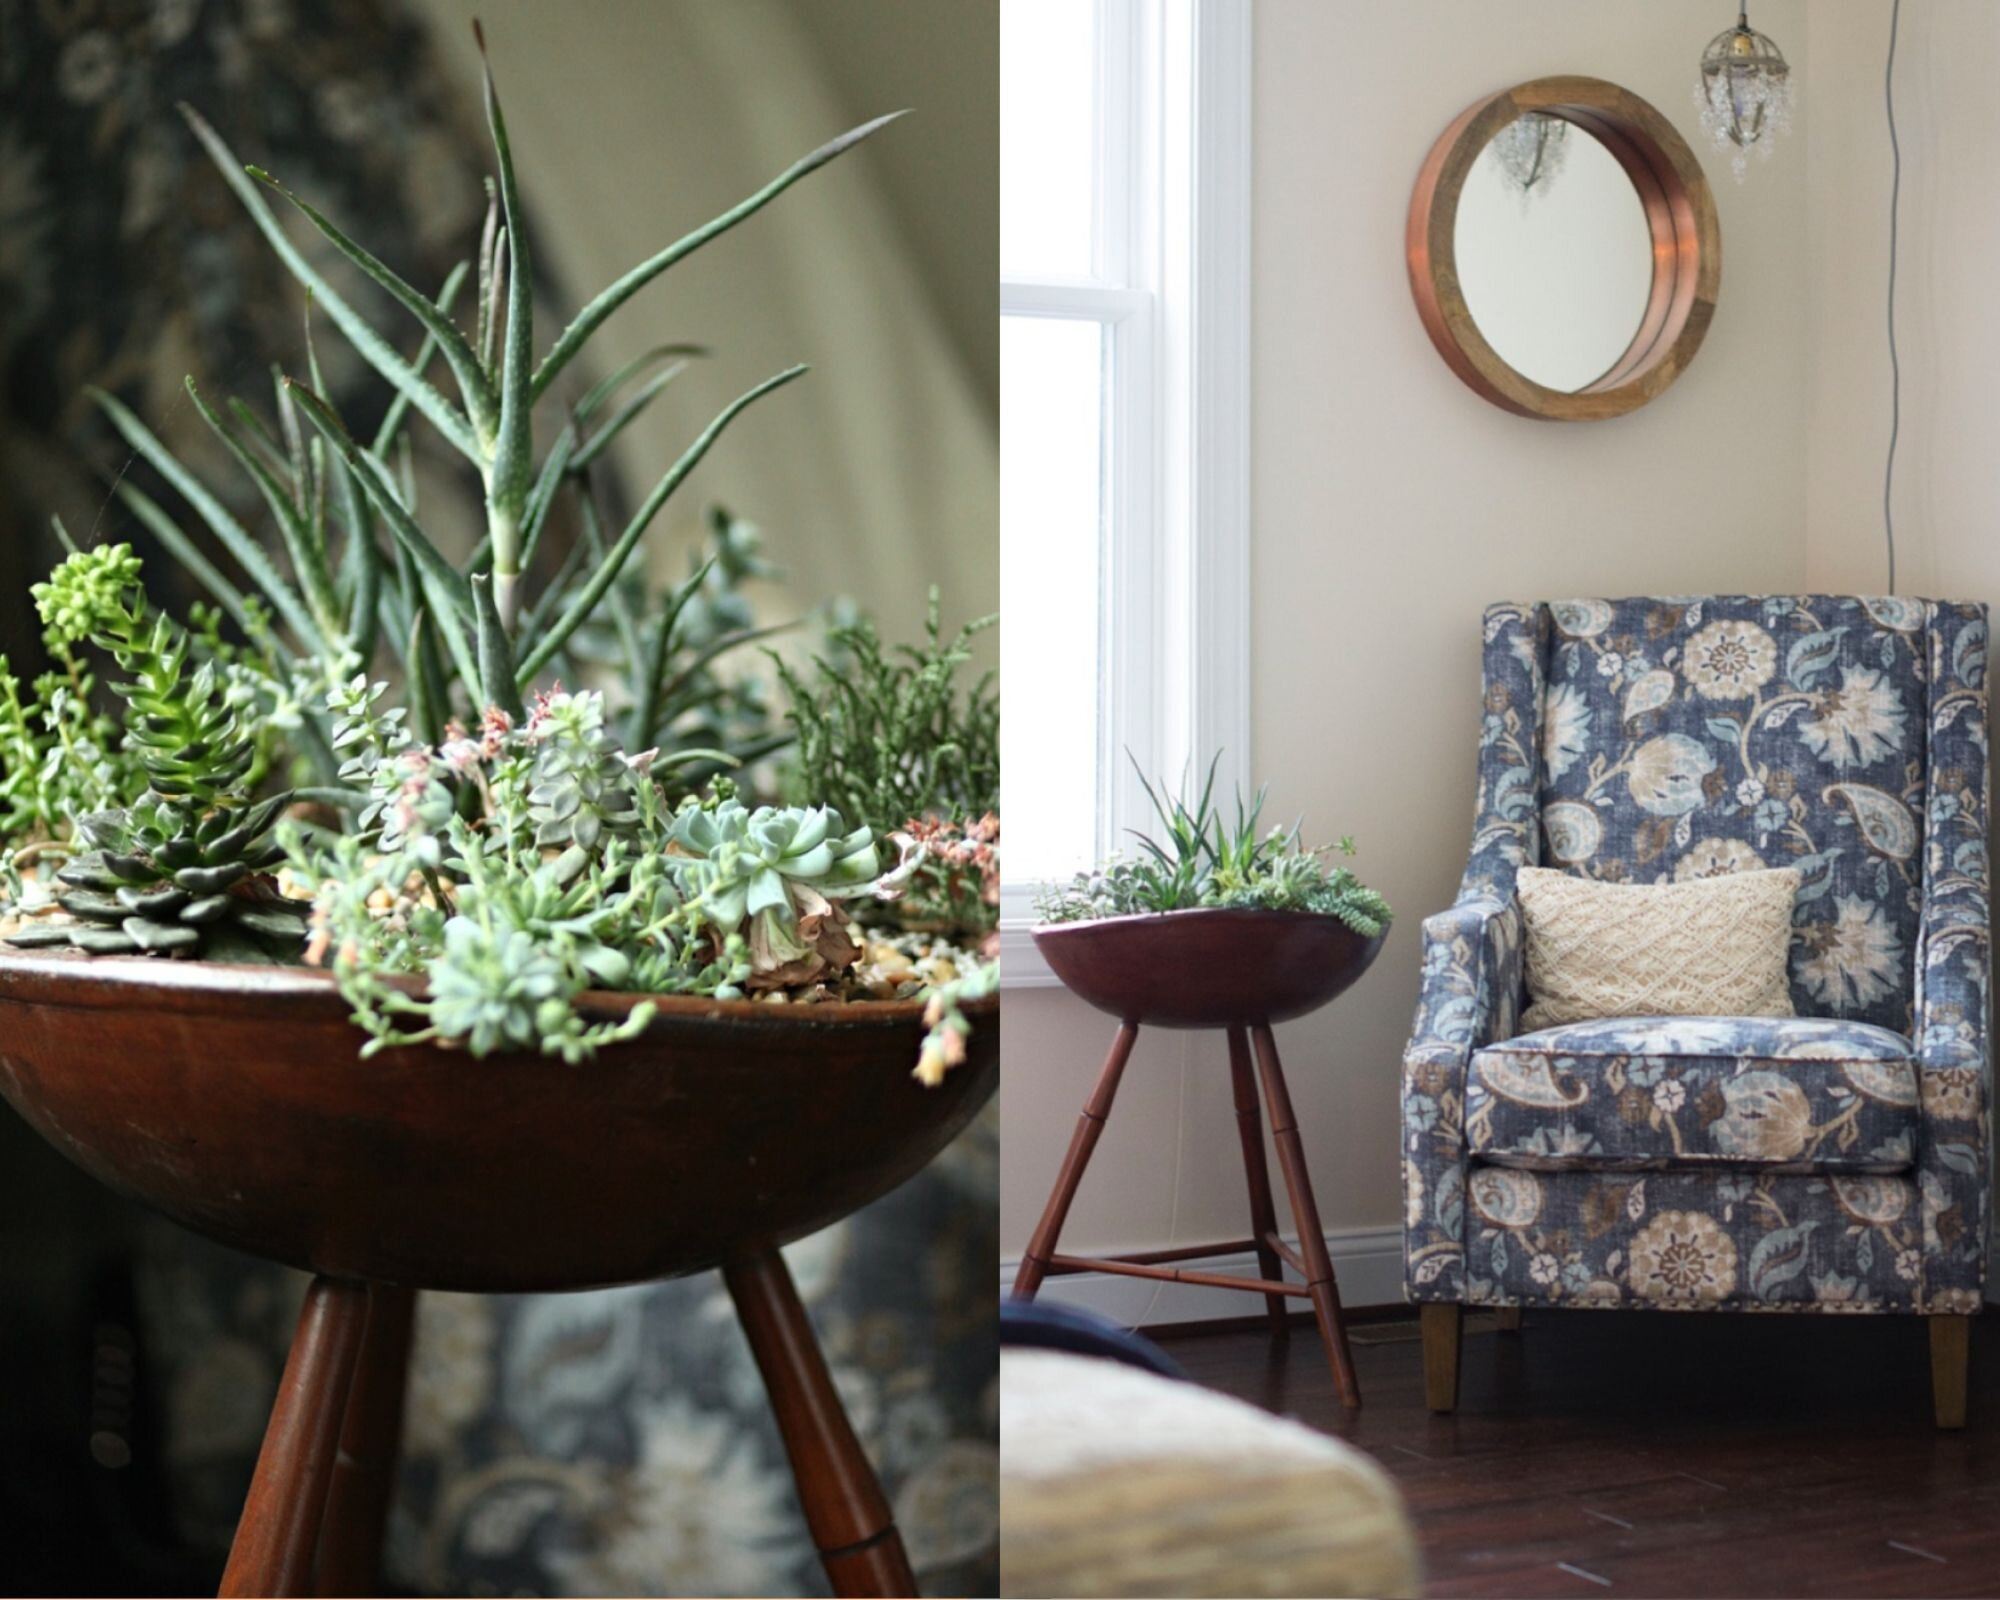 I love using vintage pieces to style my plants.